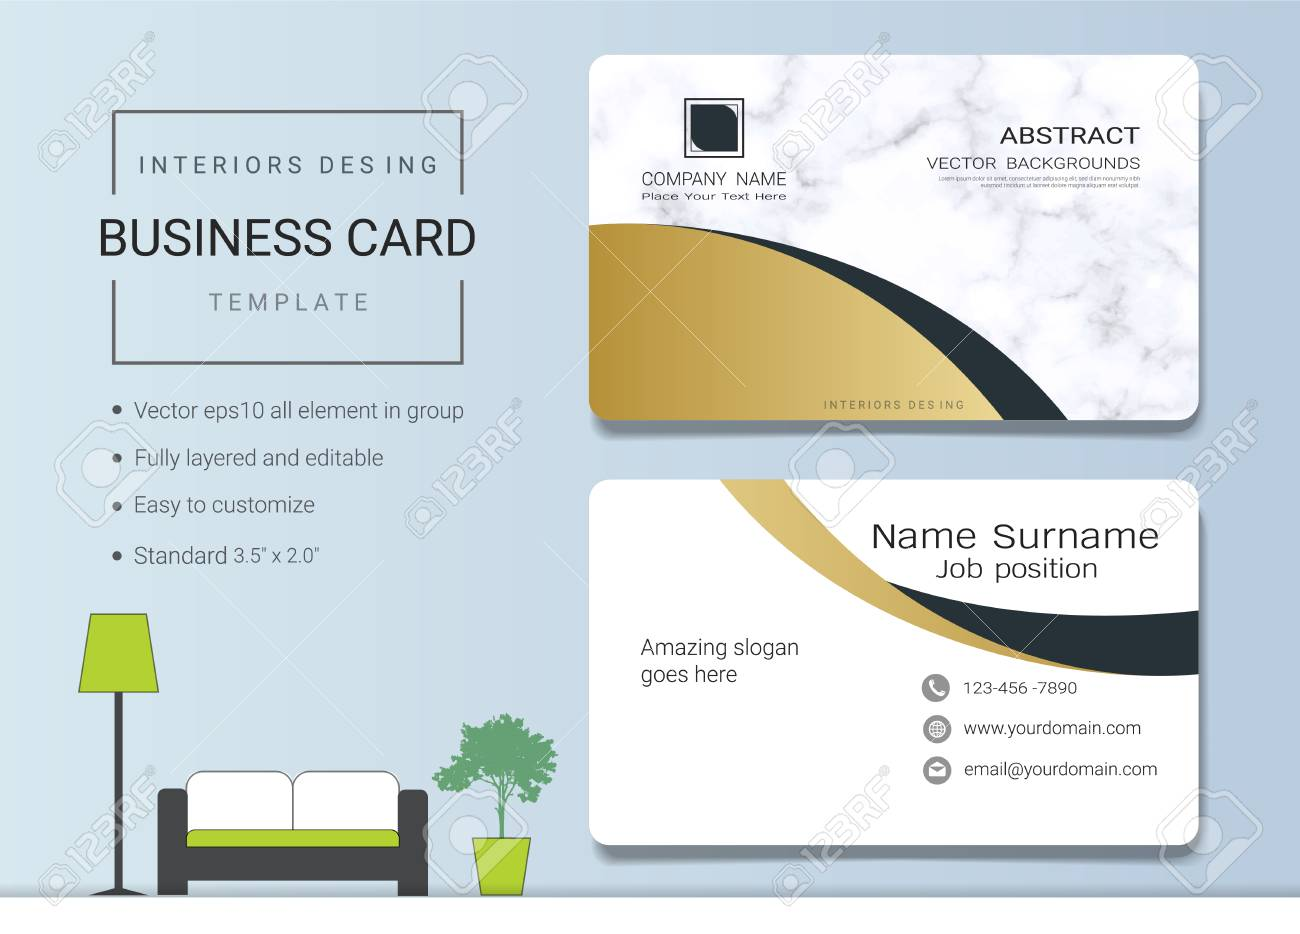 Business Card Or Name Card Template For Interior Designer Modern Royalty Free Cliparts Vectors And Stock Illustration Image 96103072